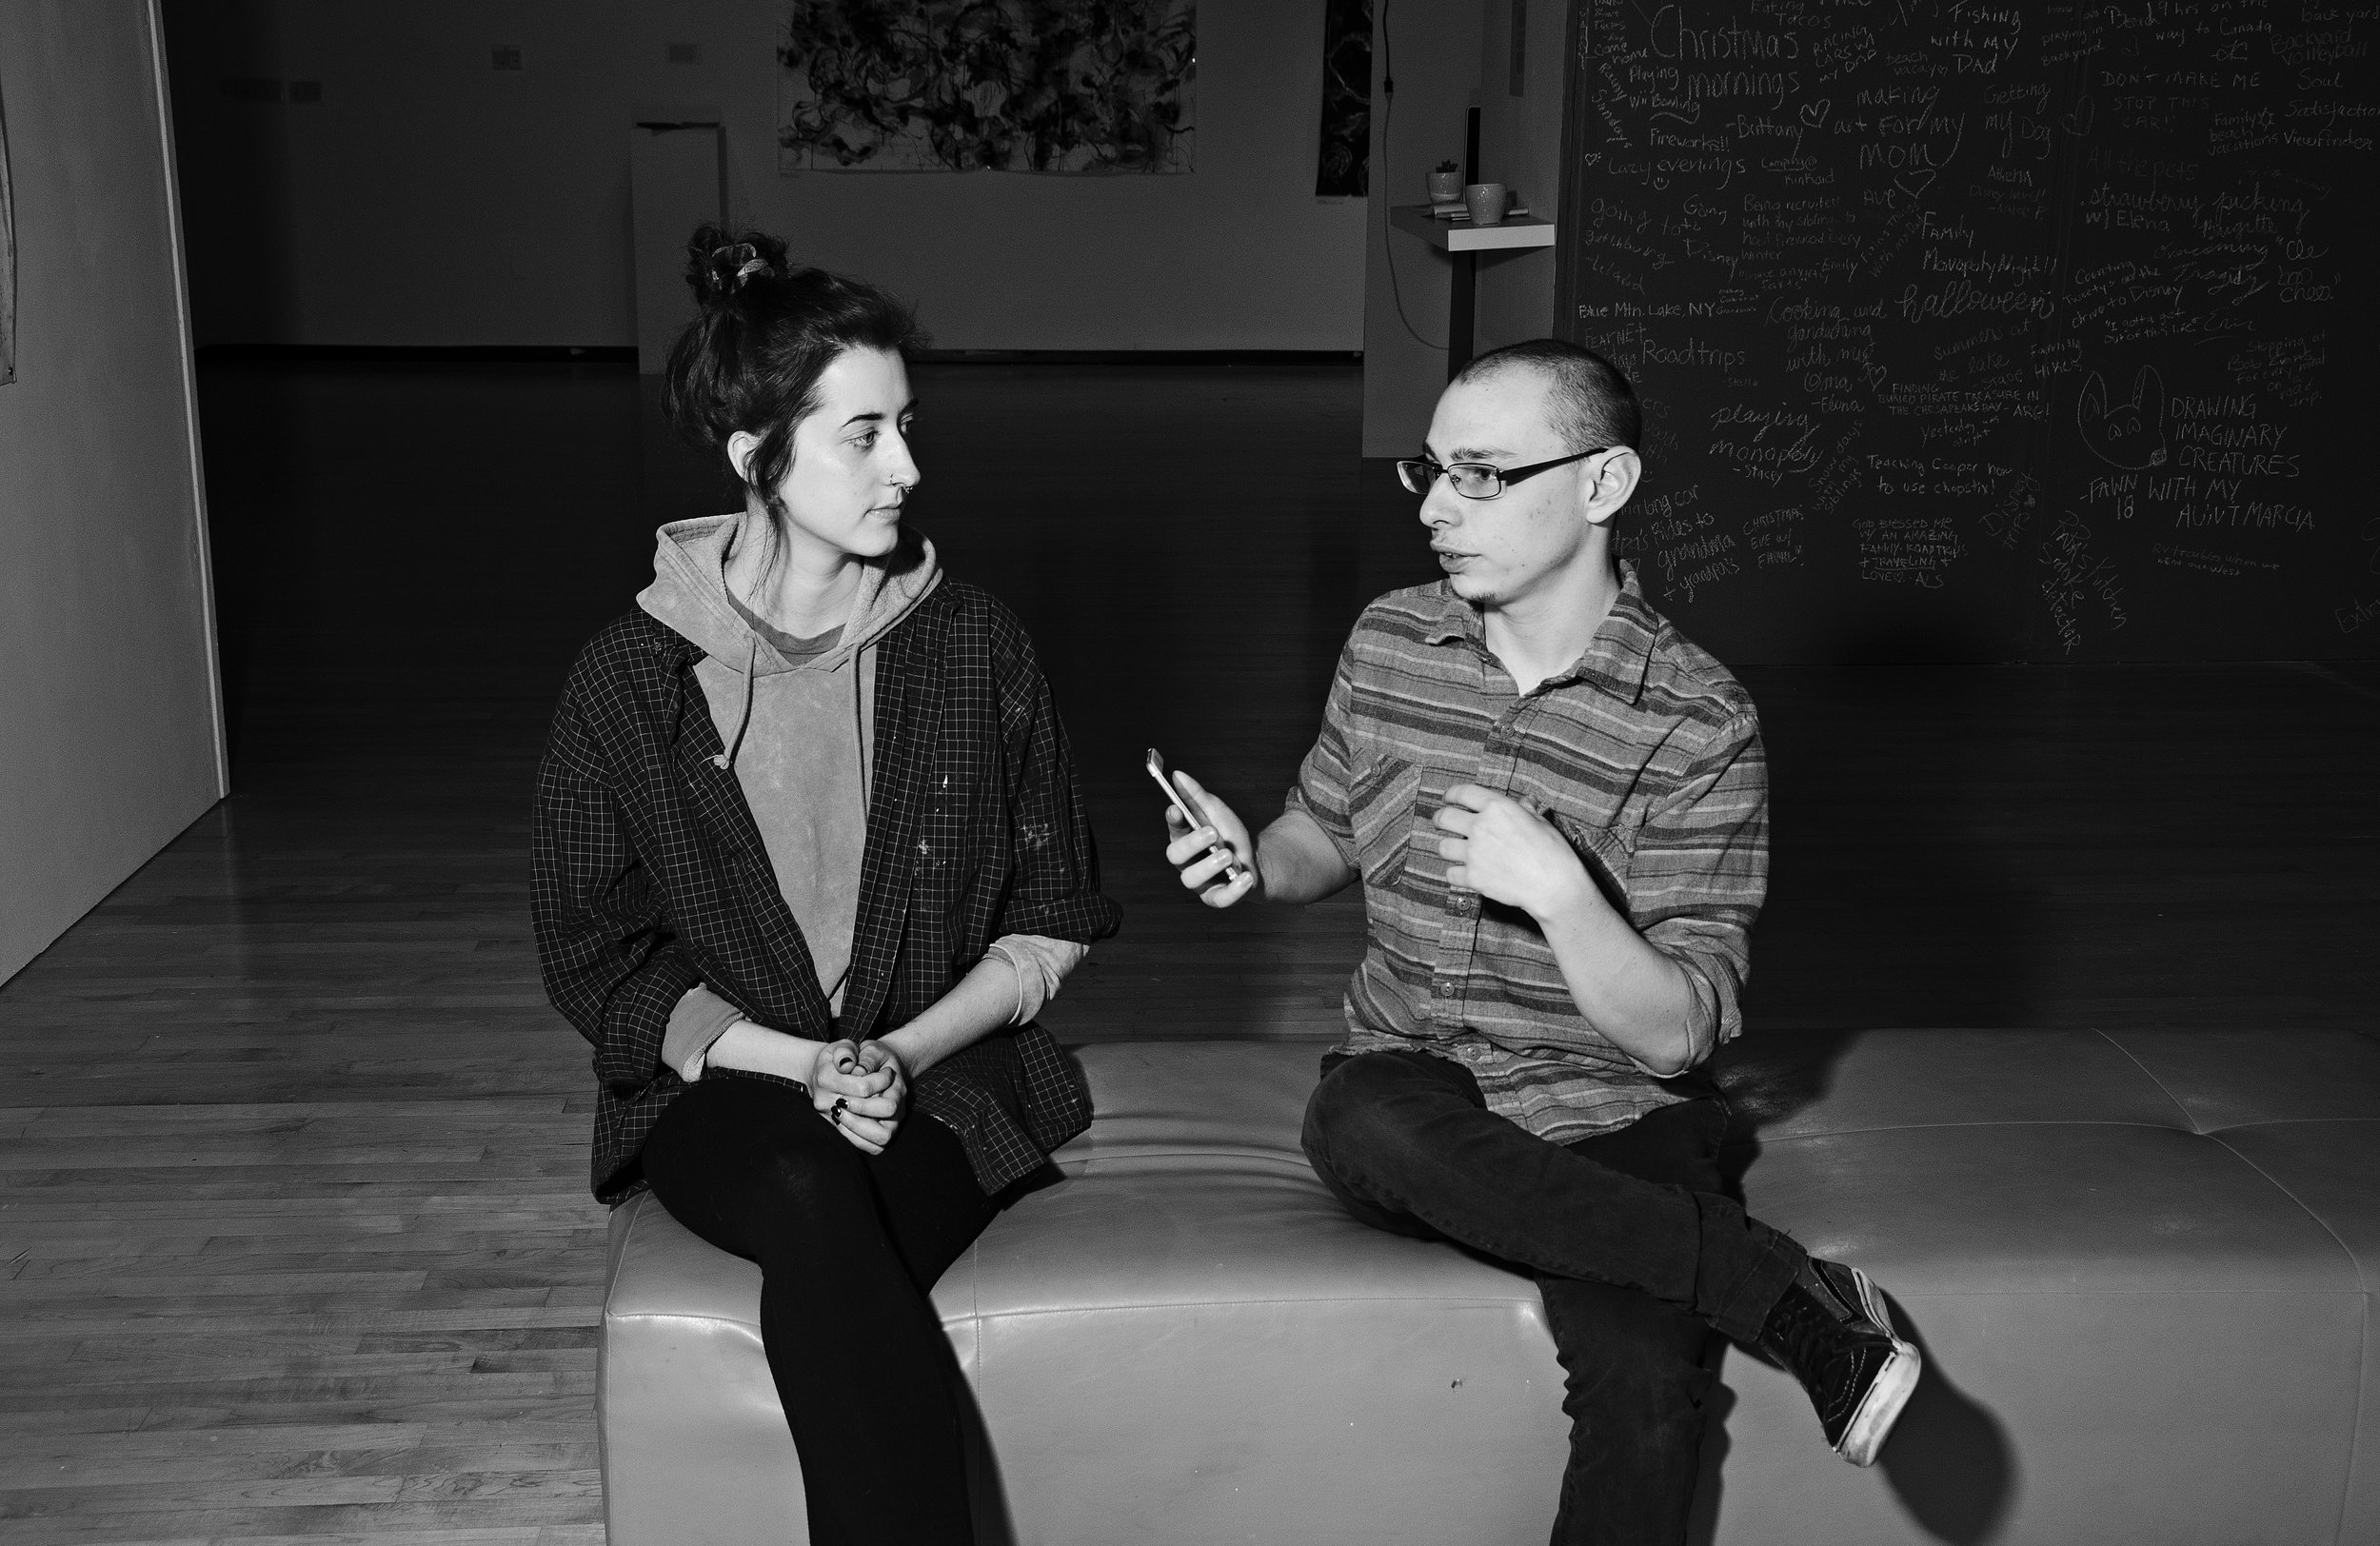 Chloe Collins (left) and Stephen Marro (right) interview at the Innocence exhibition (Photographer: Joshua Mason)